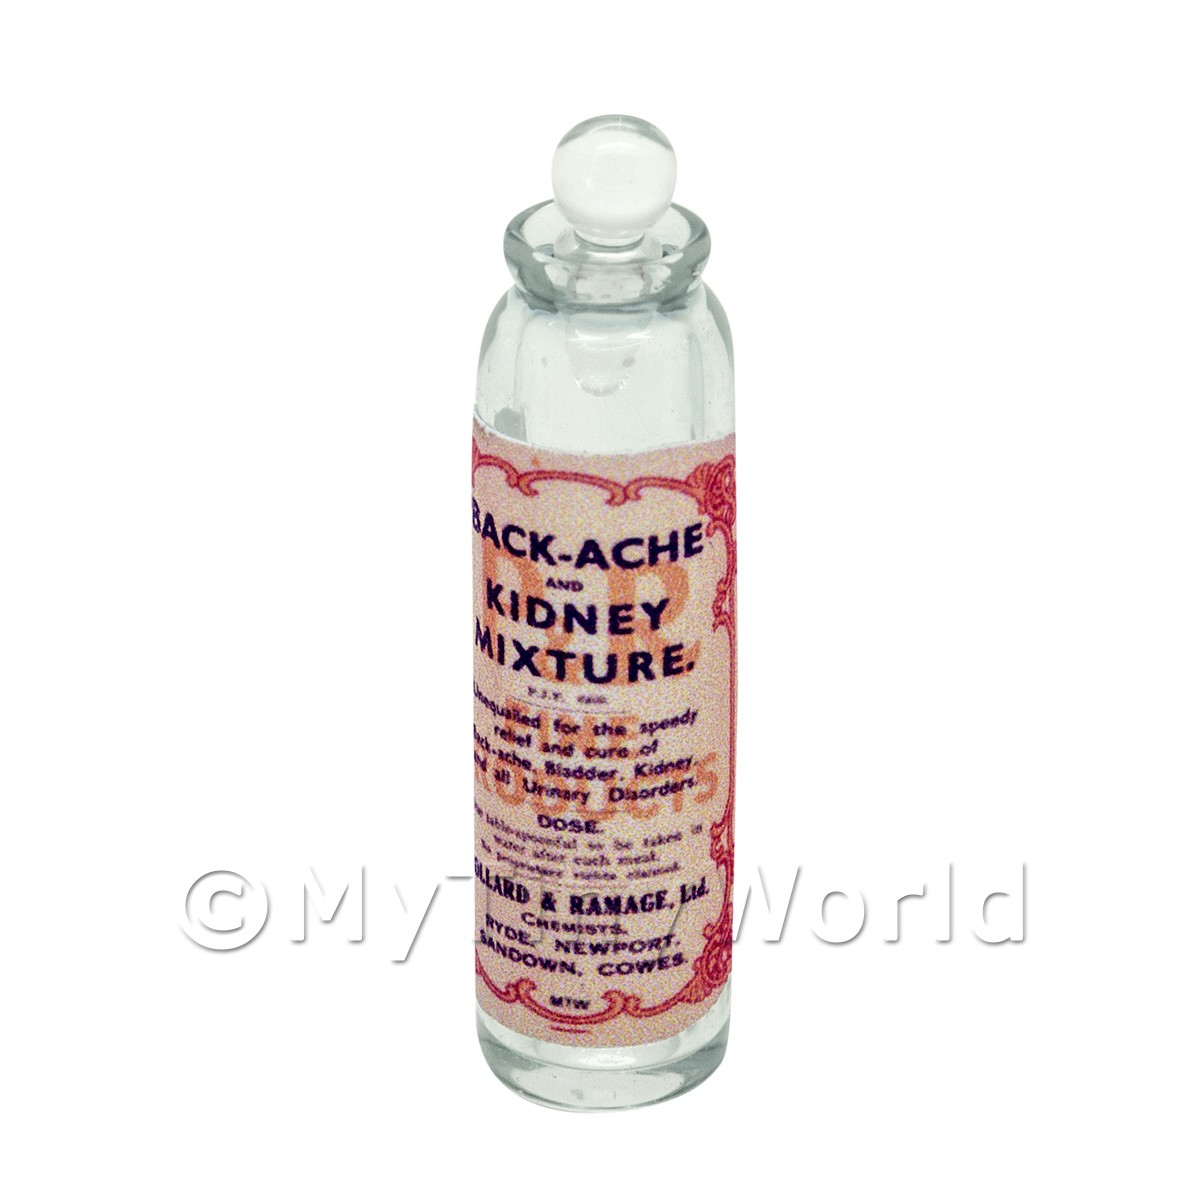 Miniature Kidney Mixture Clear Glass Apothecary Bottle